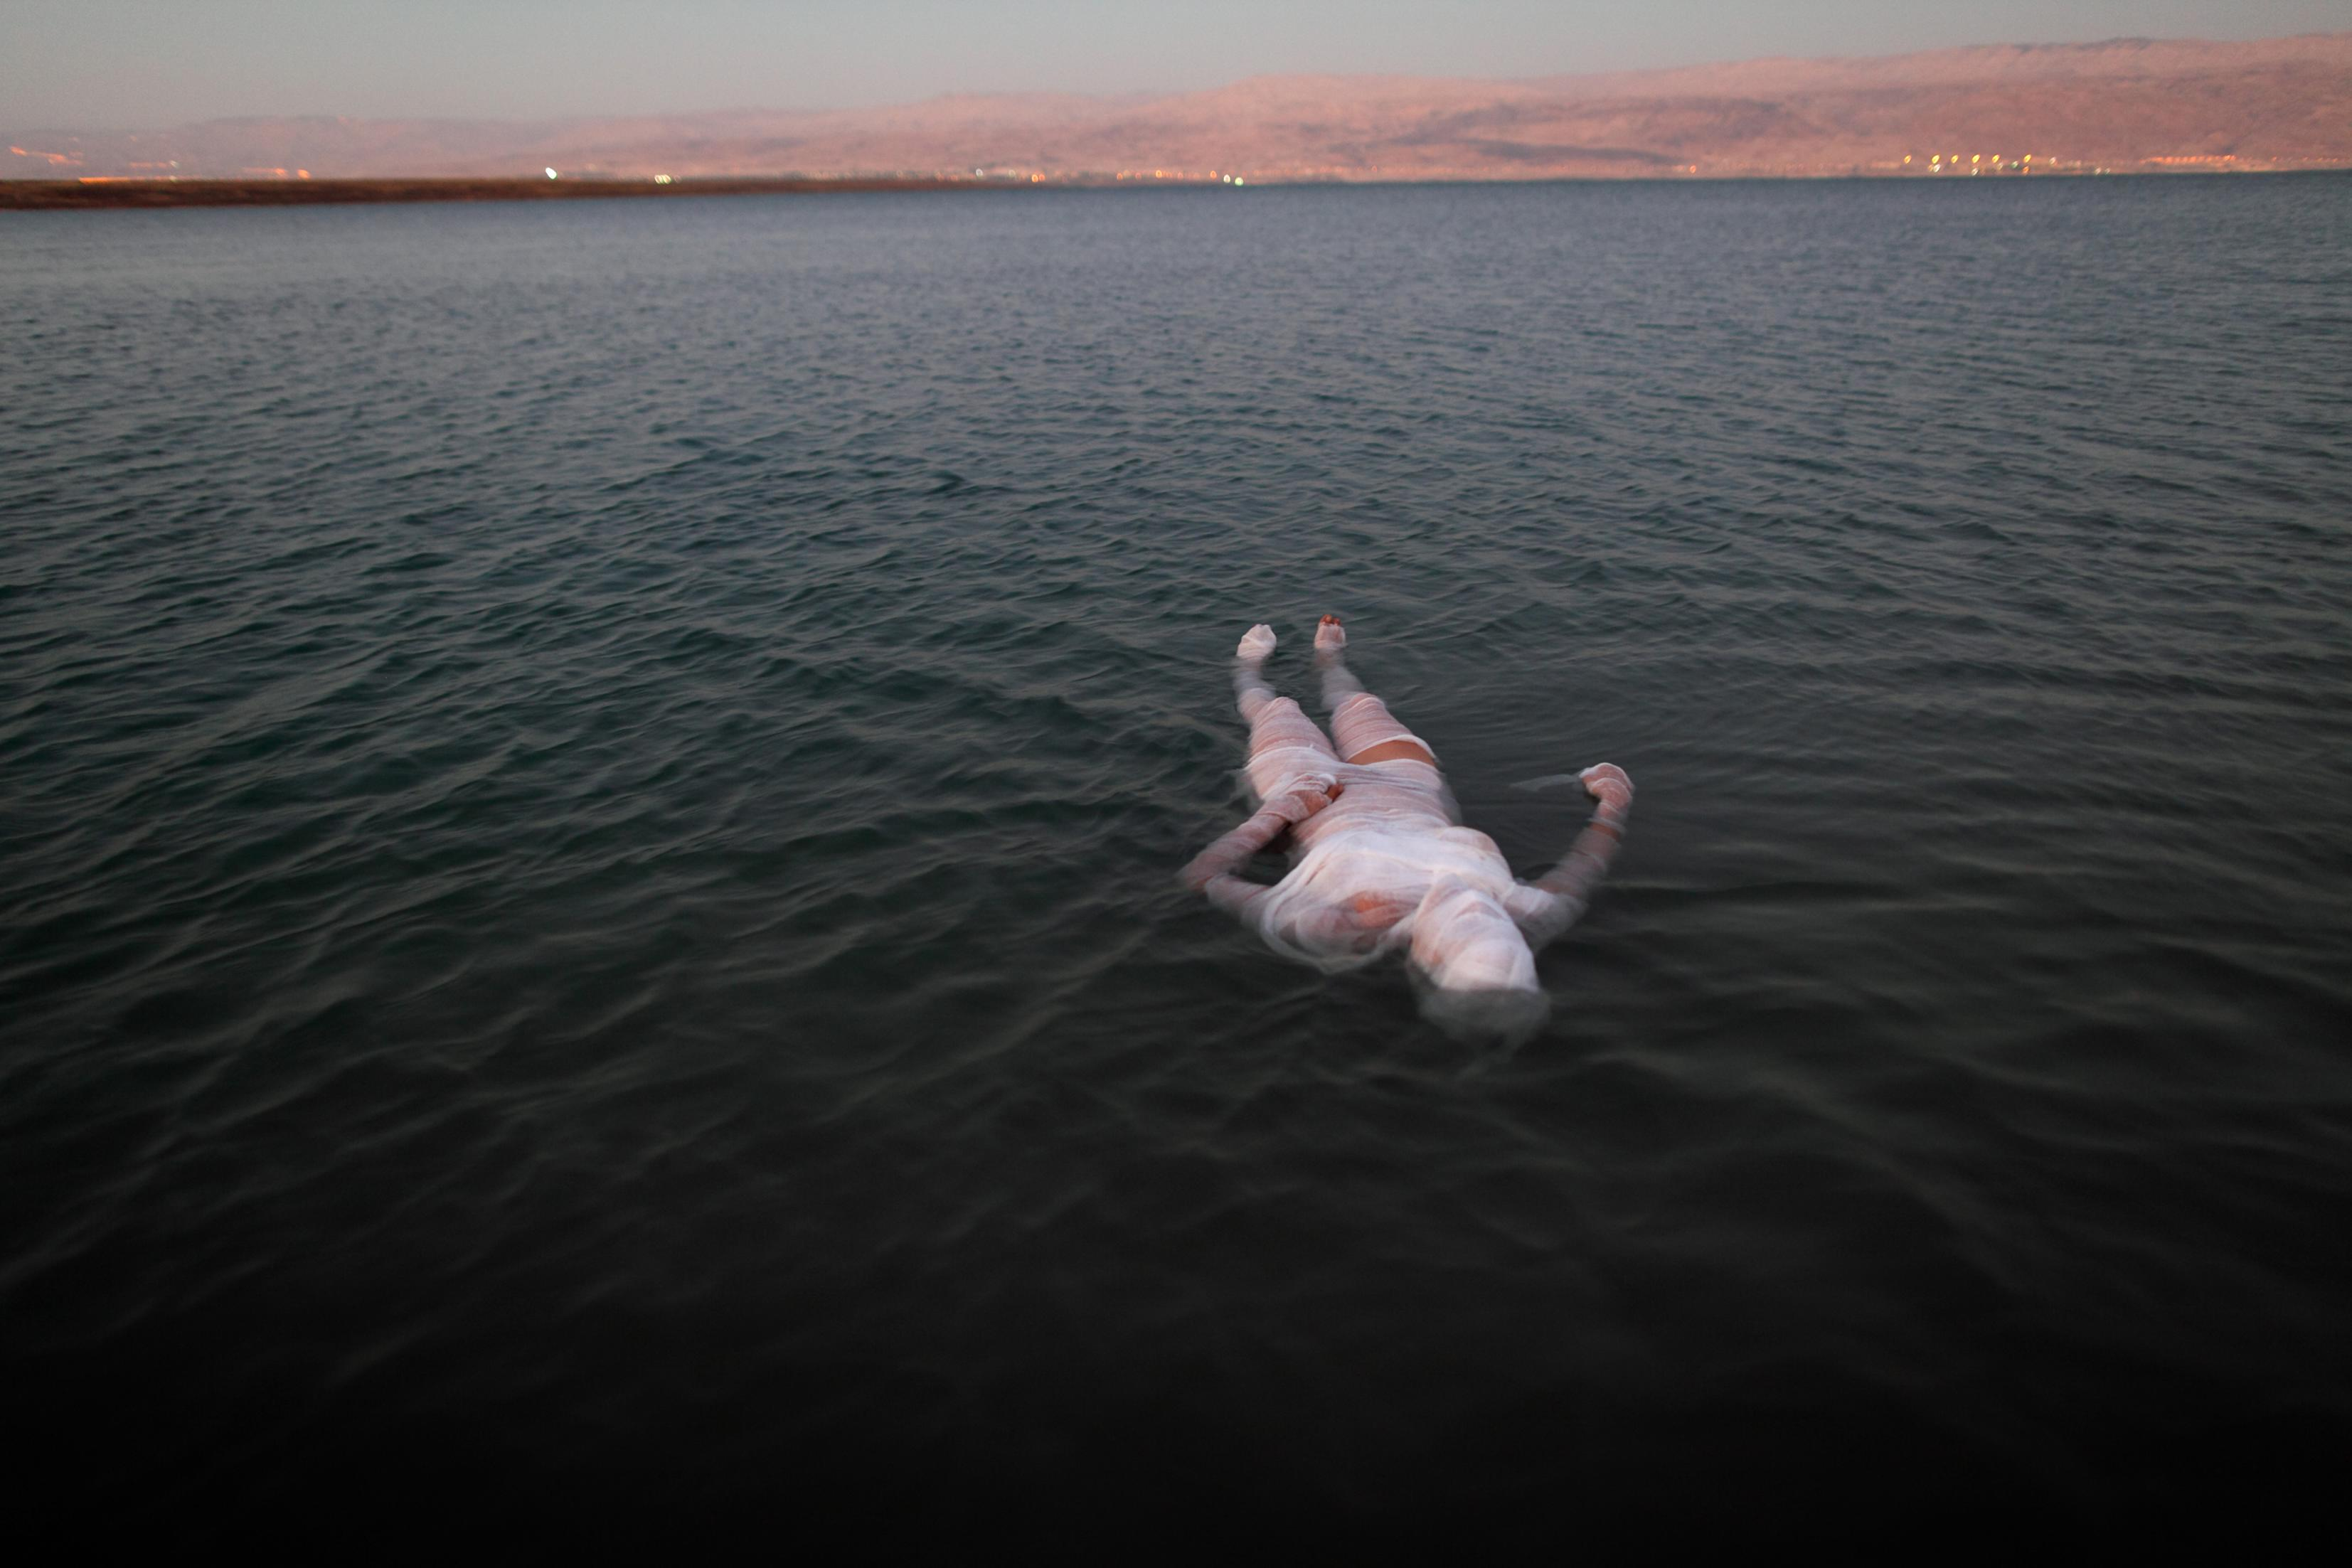 Ariane Littman,Sea of Death 2010,Performance at the Dead Sea, video, Photograph_Jim Hollander